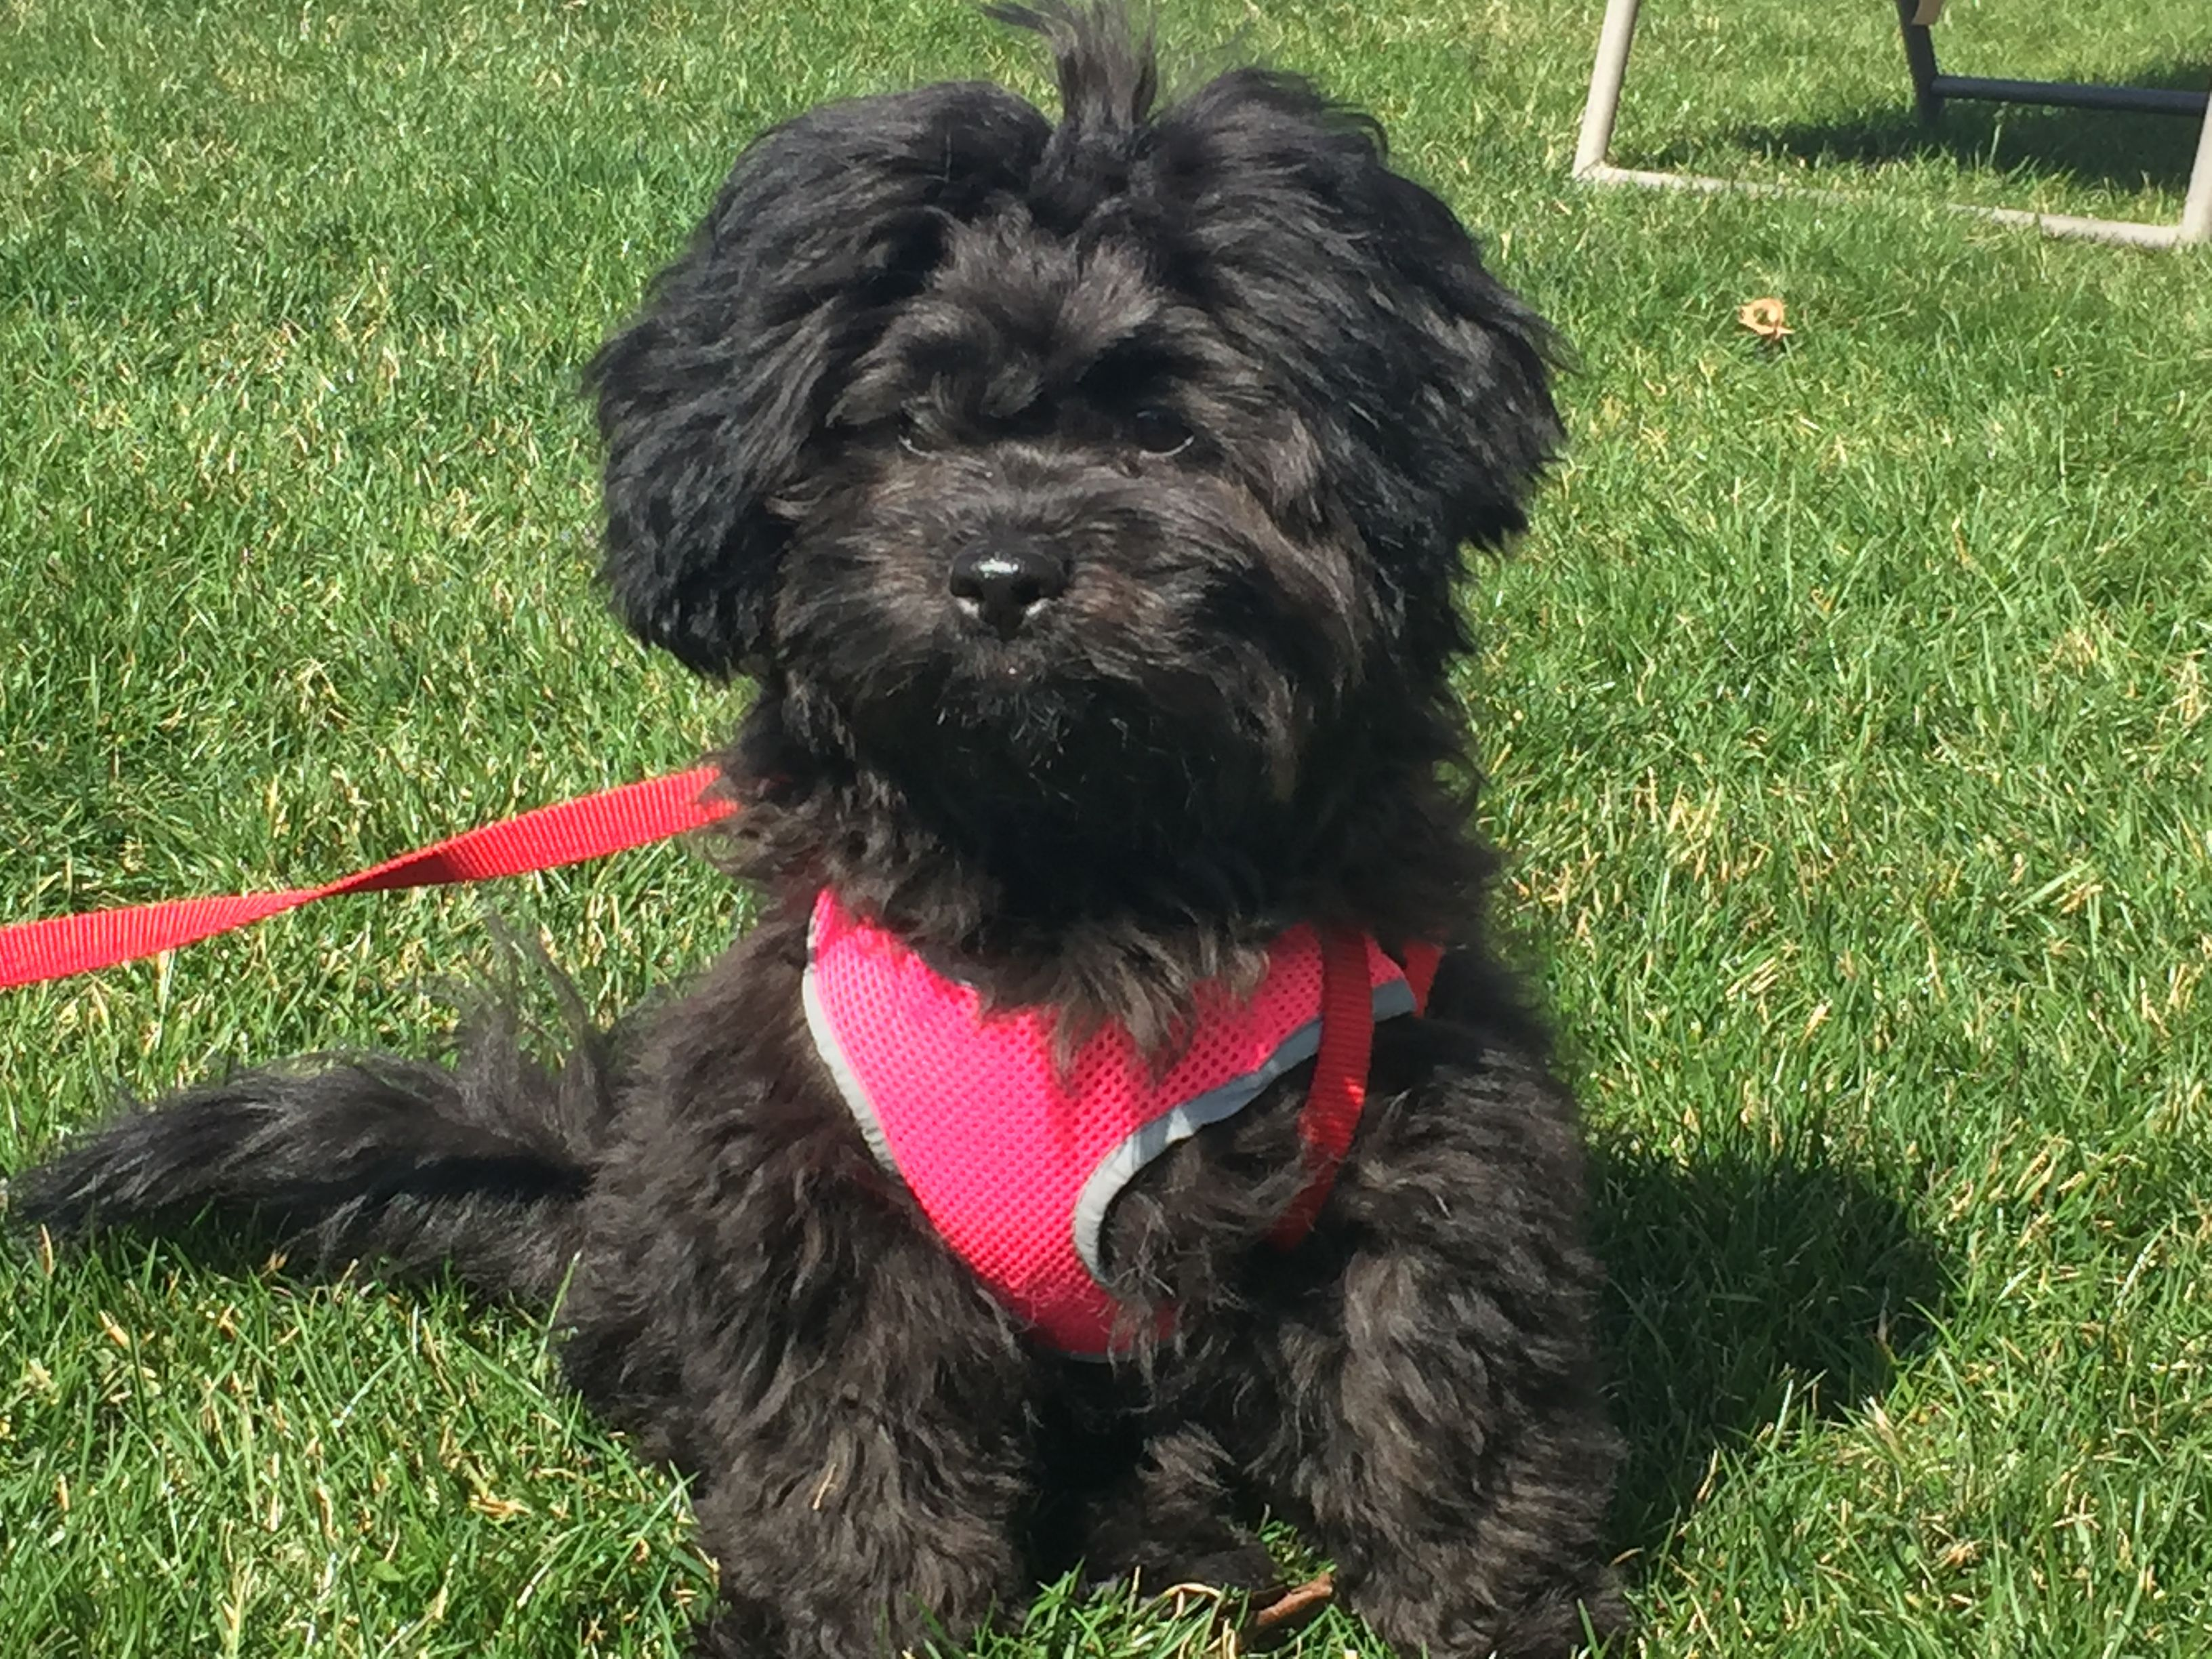 Shitzu Poodle Shipoo This Puppy Is Adorable 4 Month Old Black